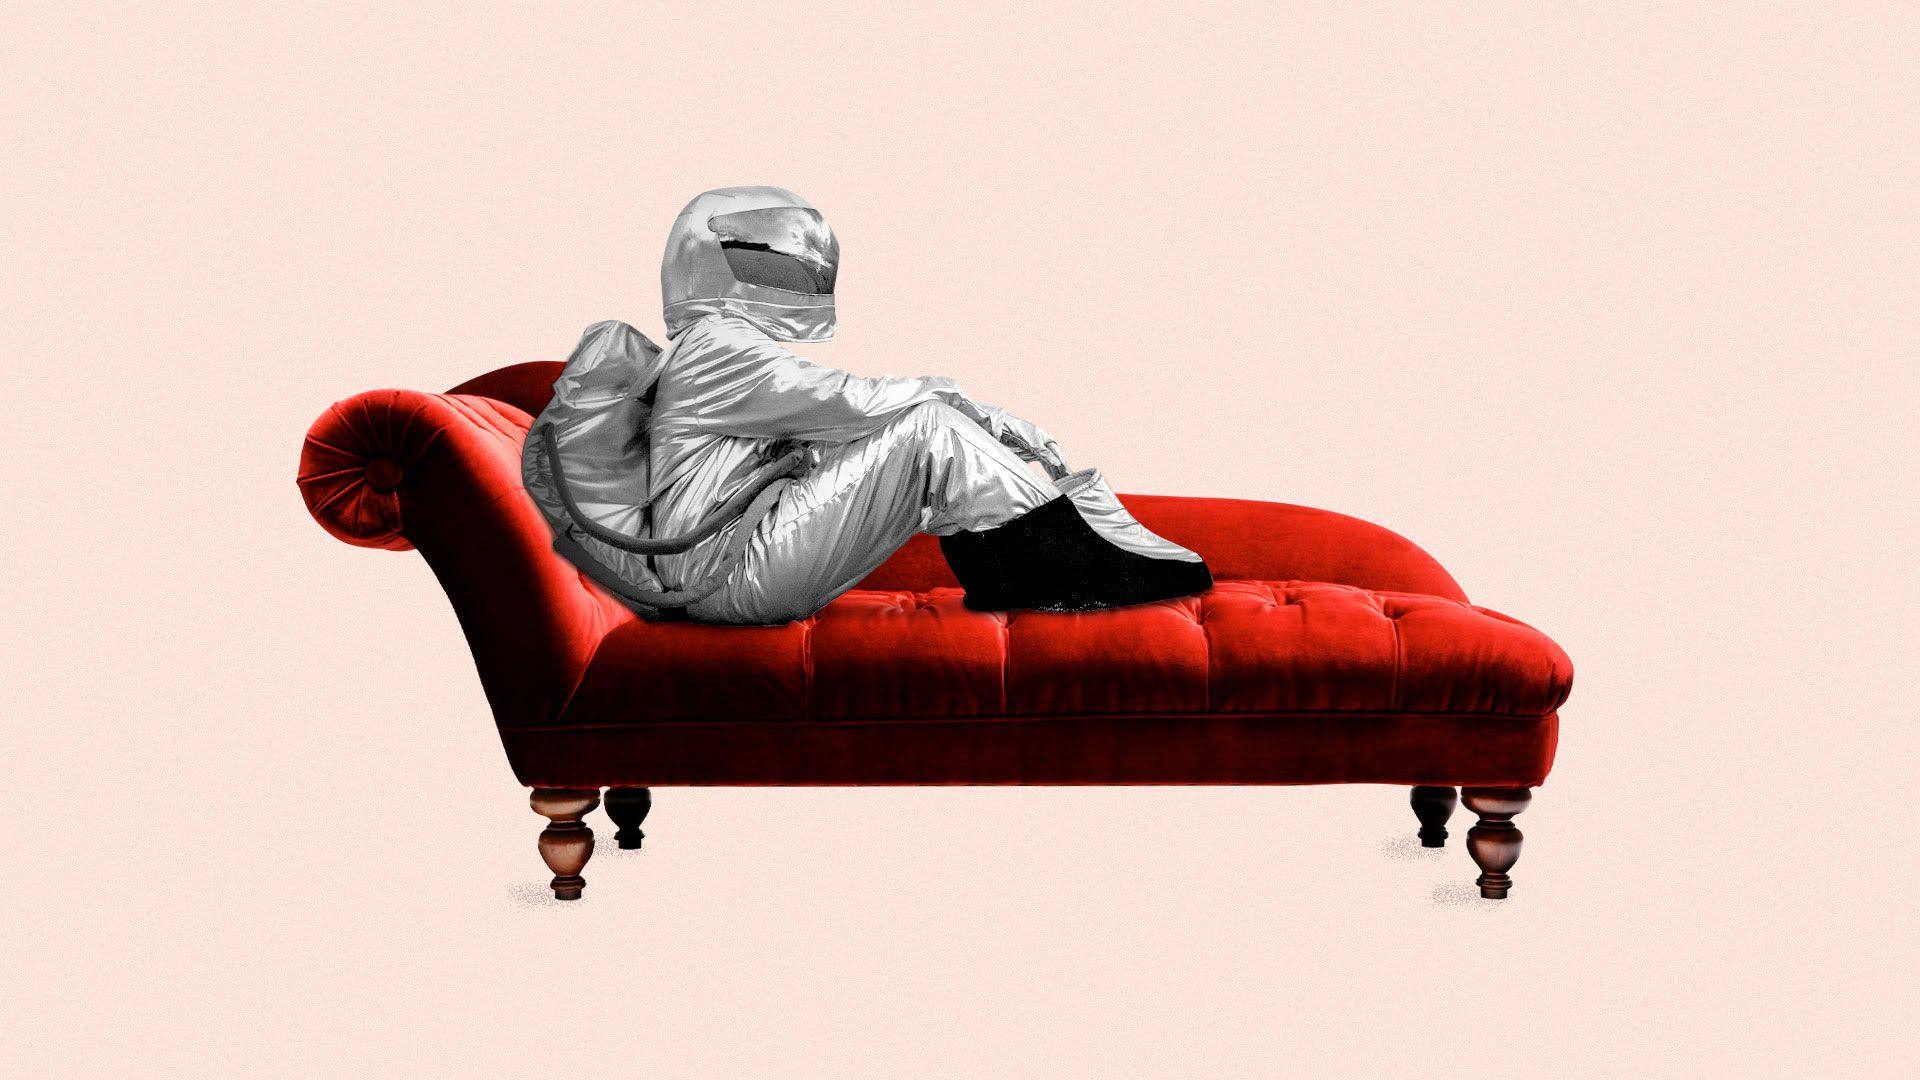 Illustration of an astronaut seated on a therapist couch.